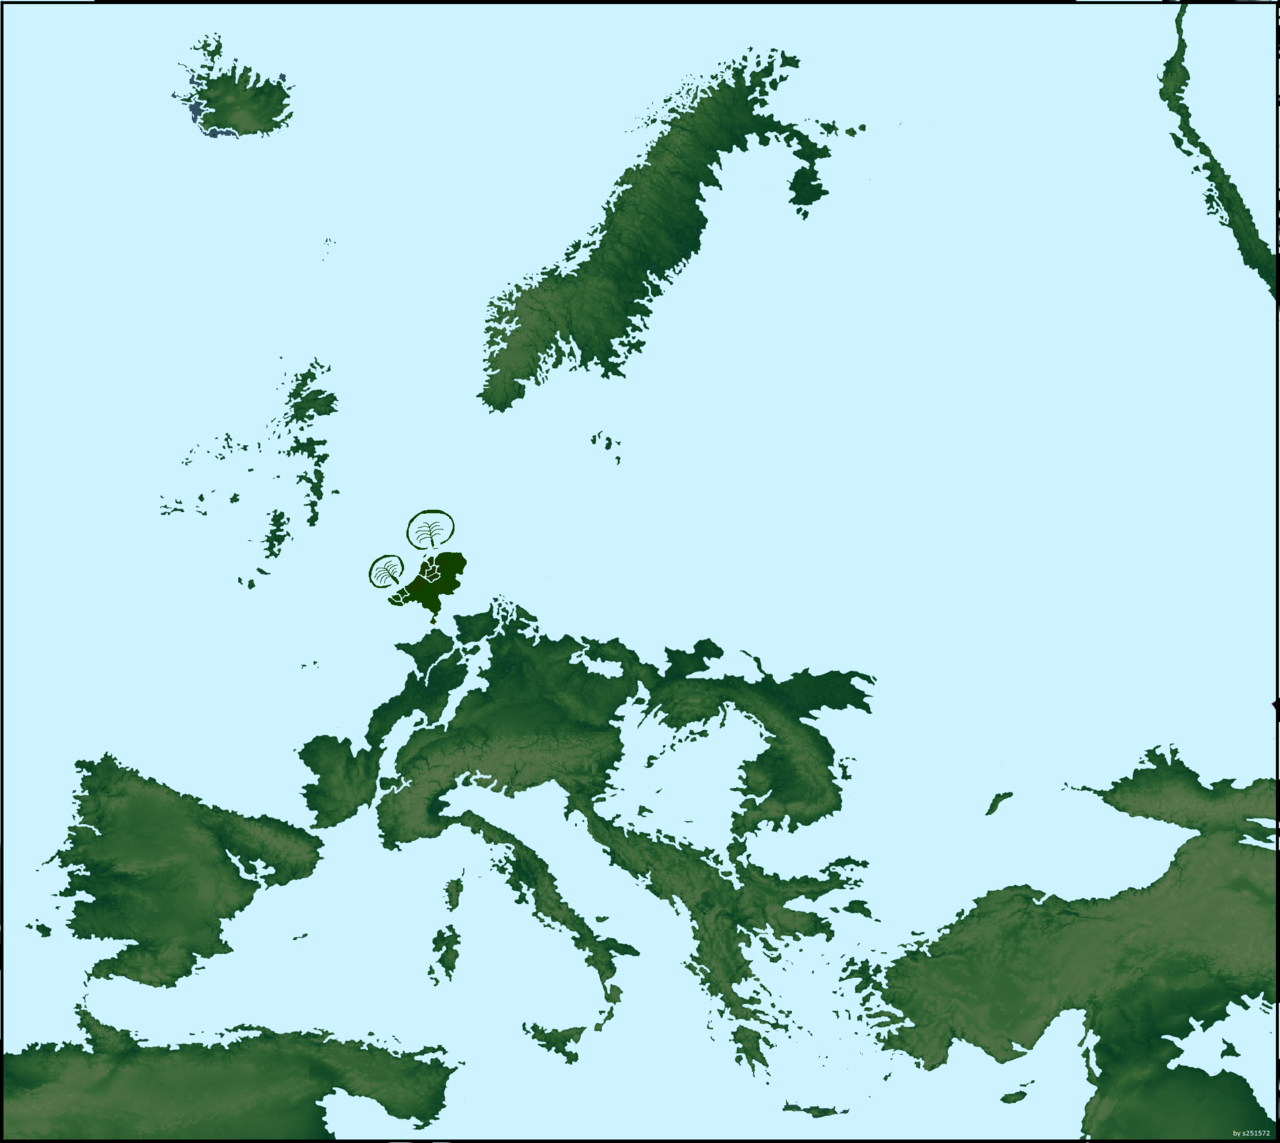 Europe-If sea levels rose a couple hundred meters in Europe